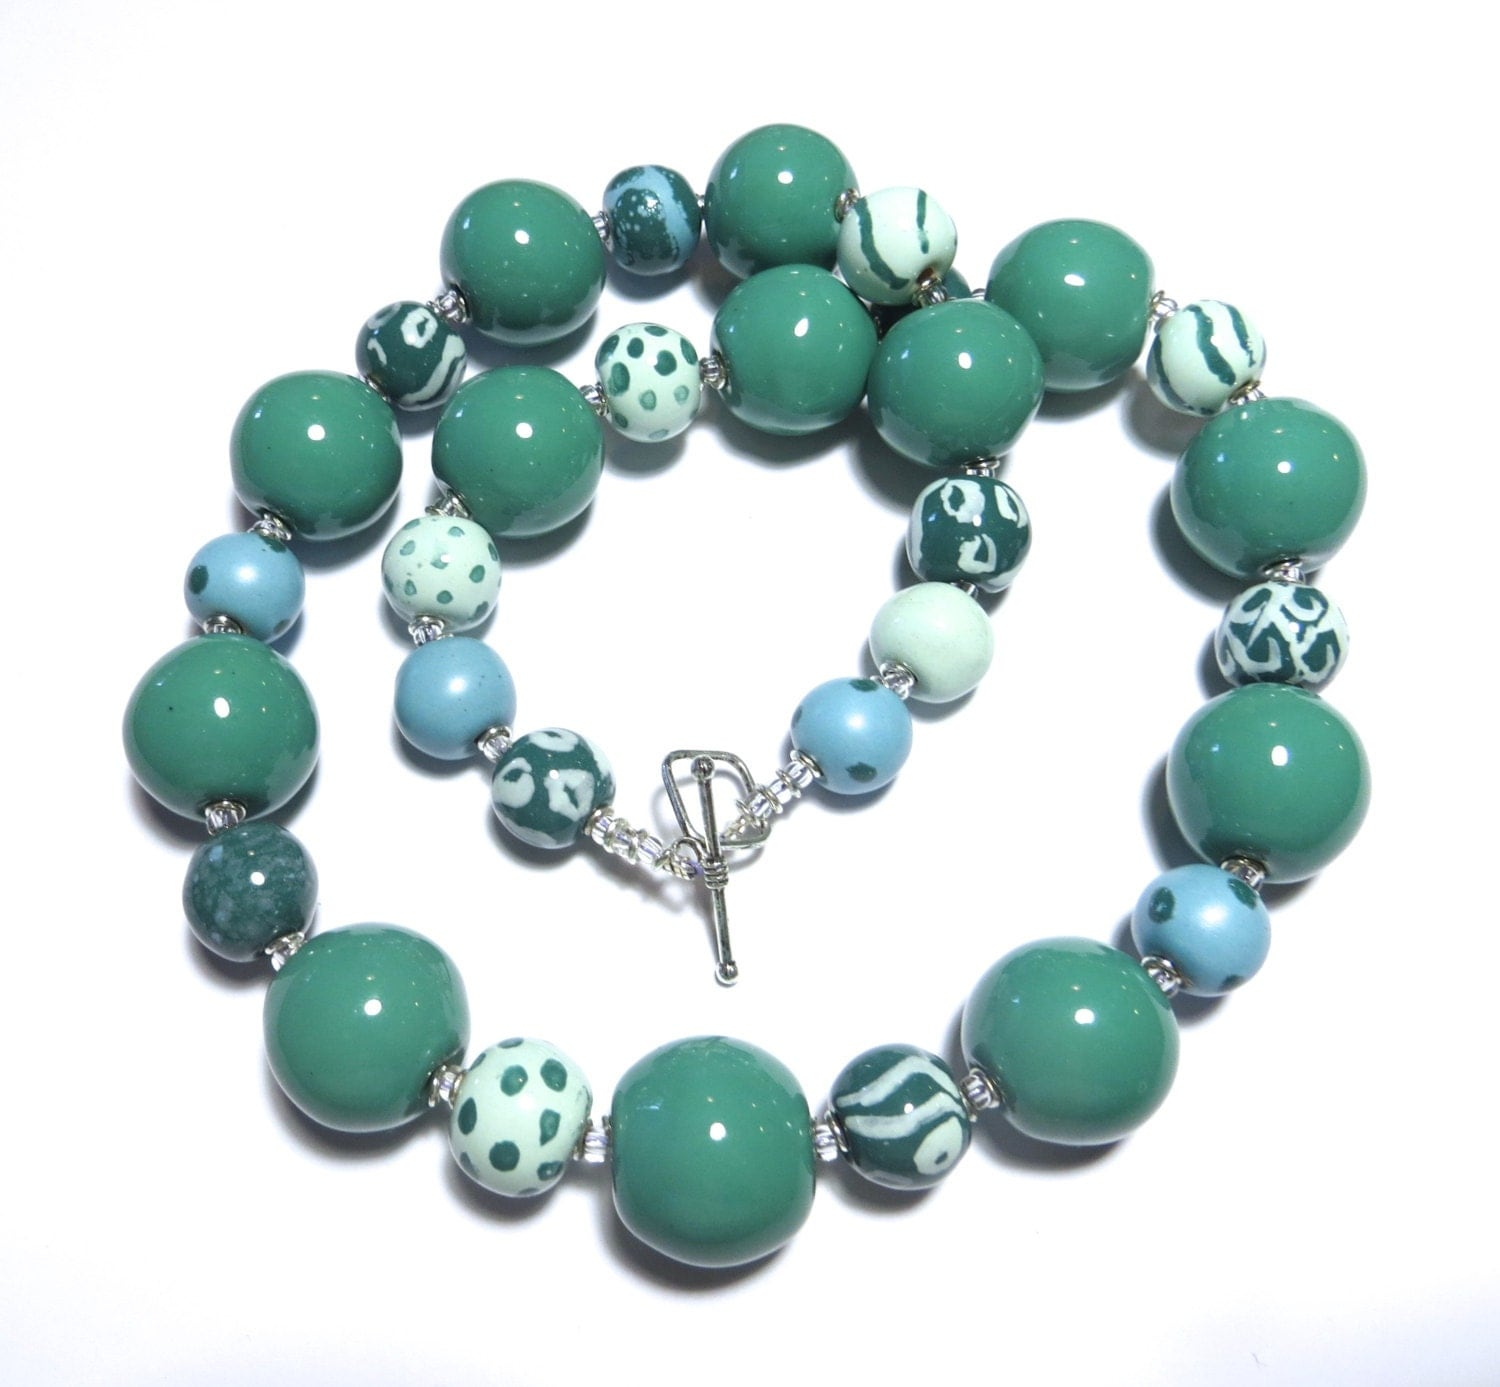 Ceramic Bead Beads: Ceramic Jewelry Kazuri Bead Necklace In Teal And Sky Blue